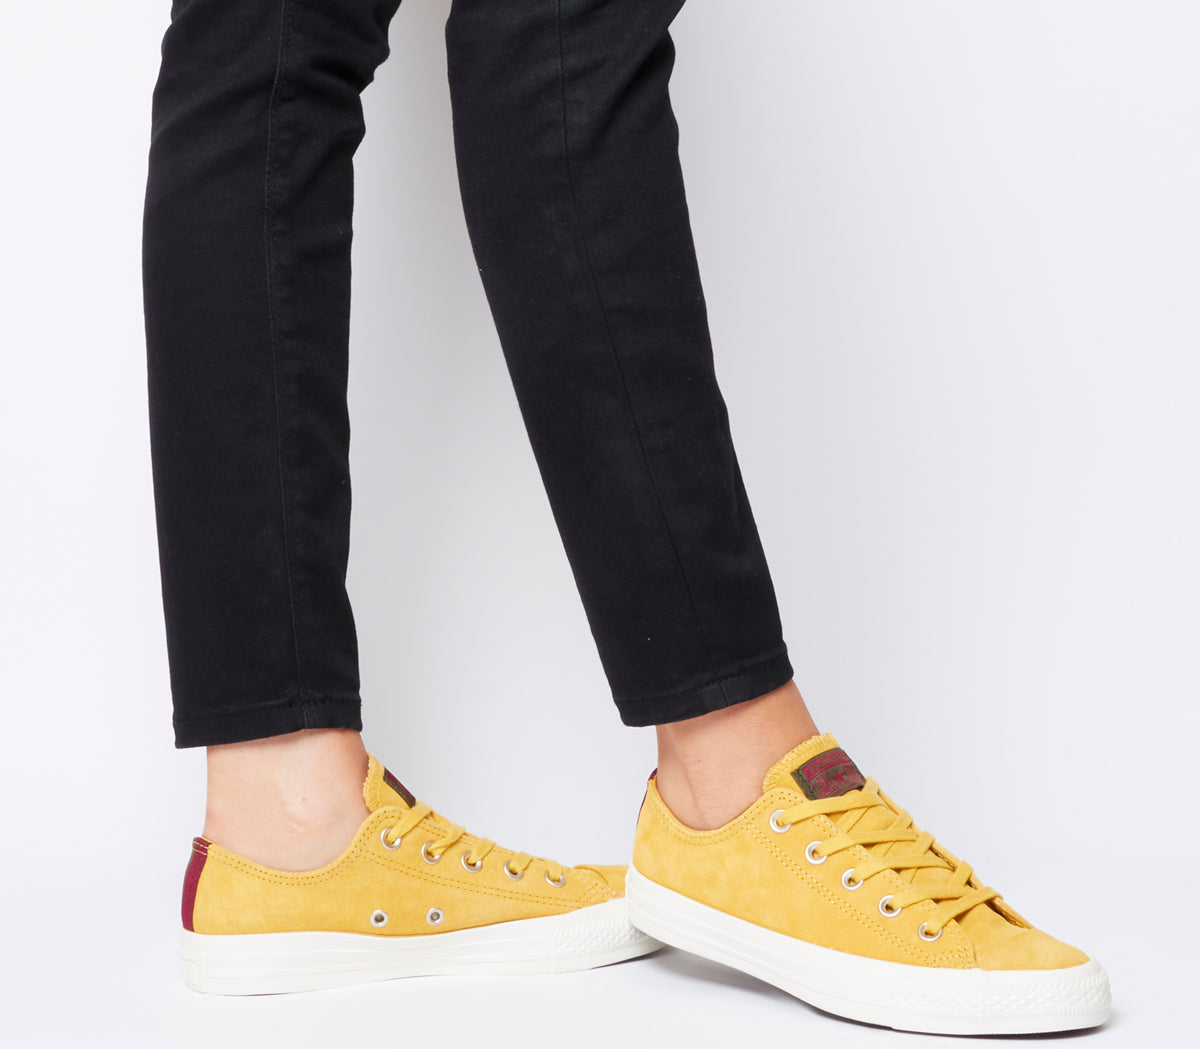 f20891ea482b Unisex Converse All Star Low Leather Trainers Desert Marigold Egret He –  OFFCUTS SHOES by OFFICE